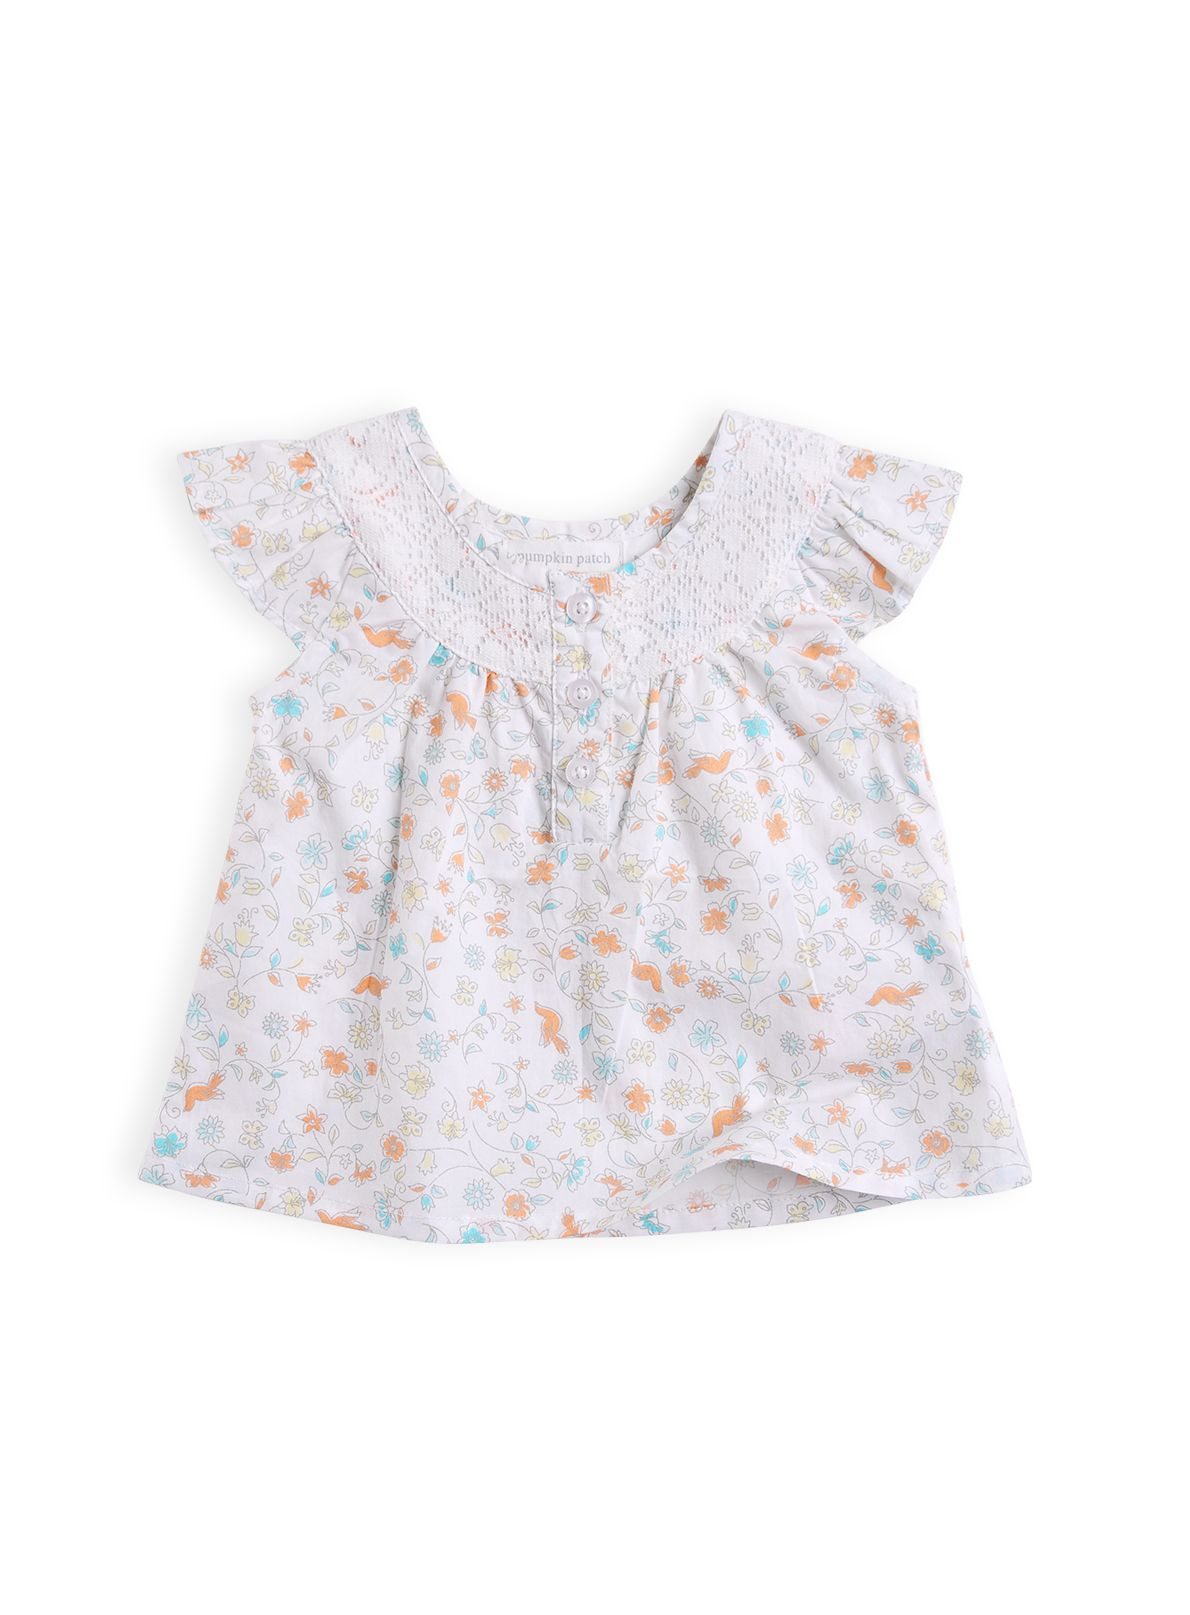 Girls lace yoke woven top